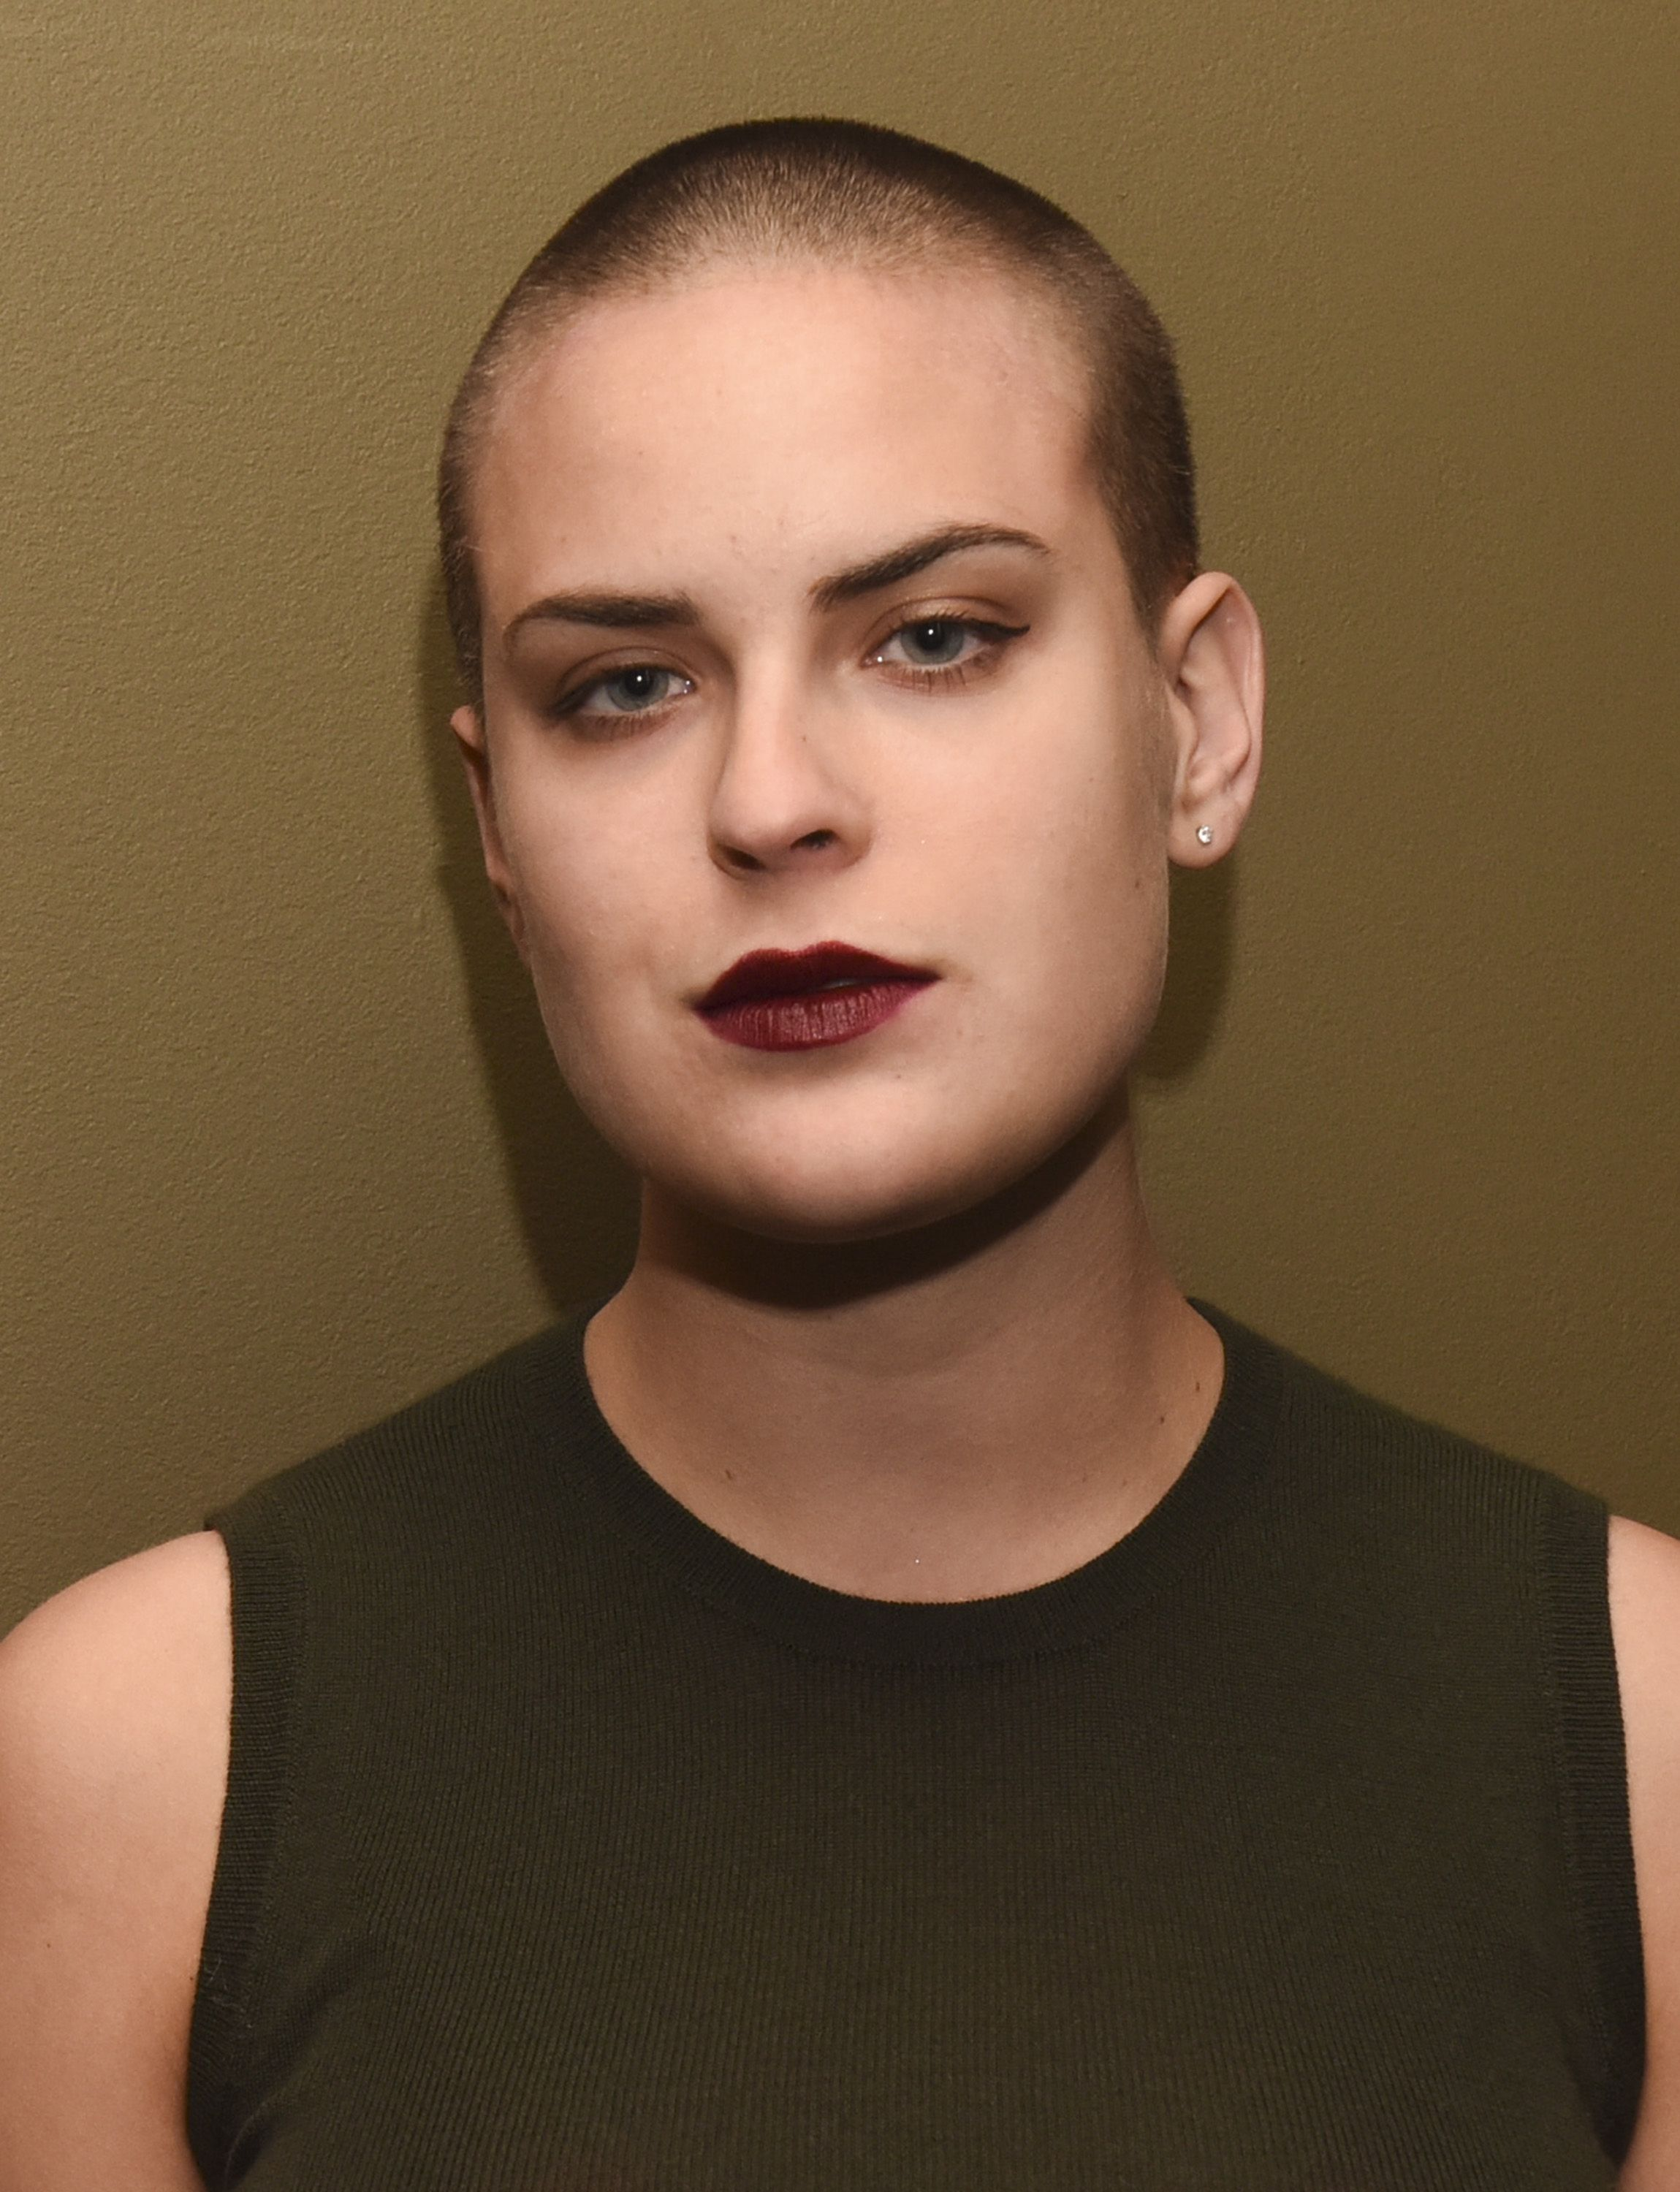 Women who have shaved their heads